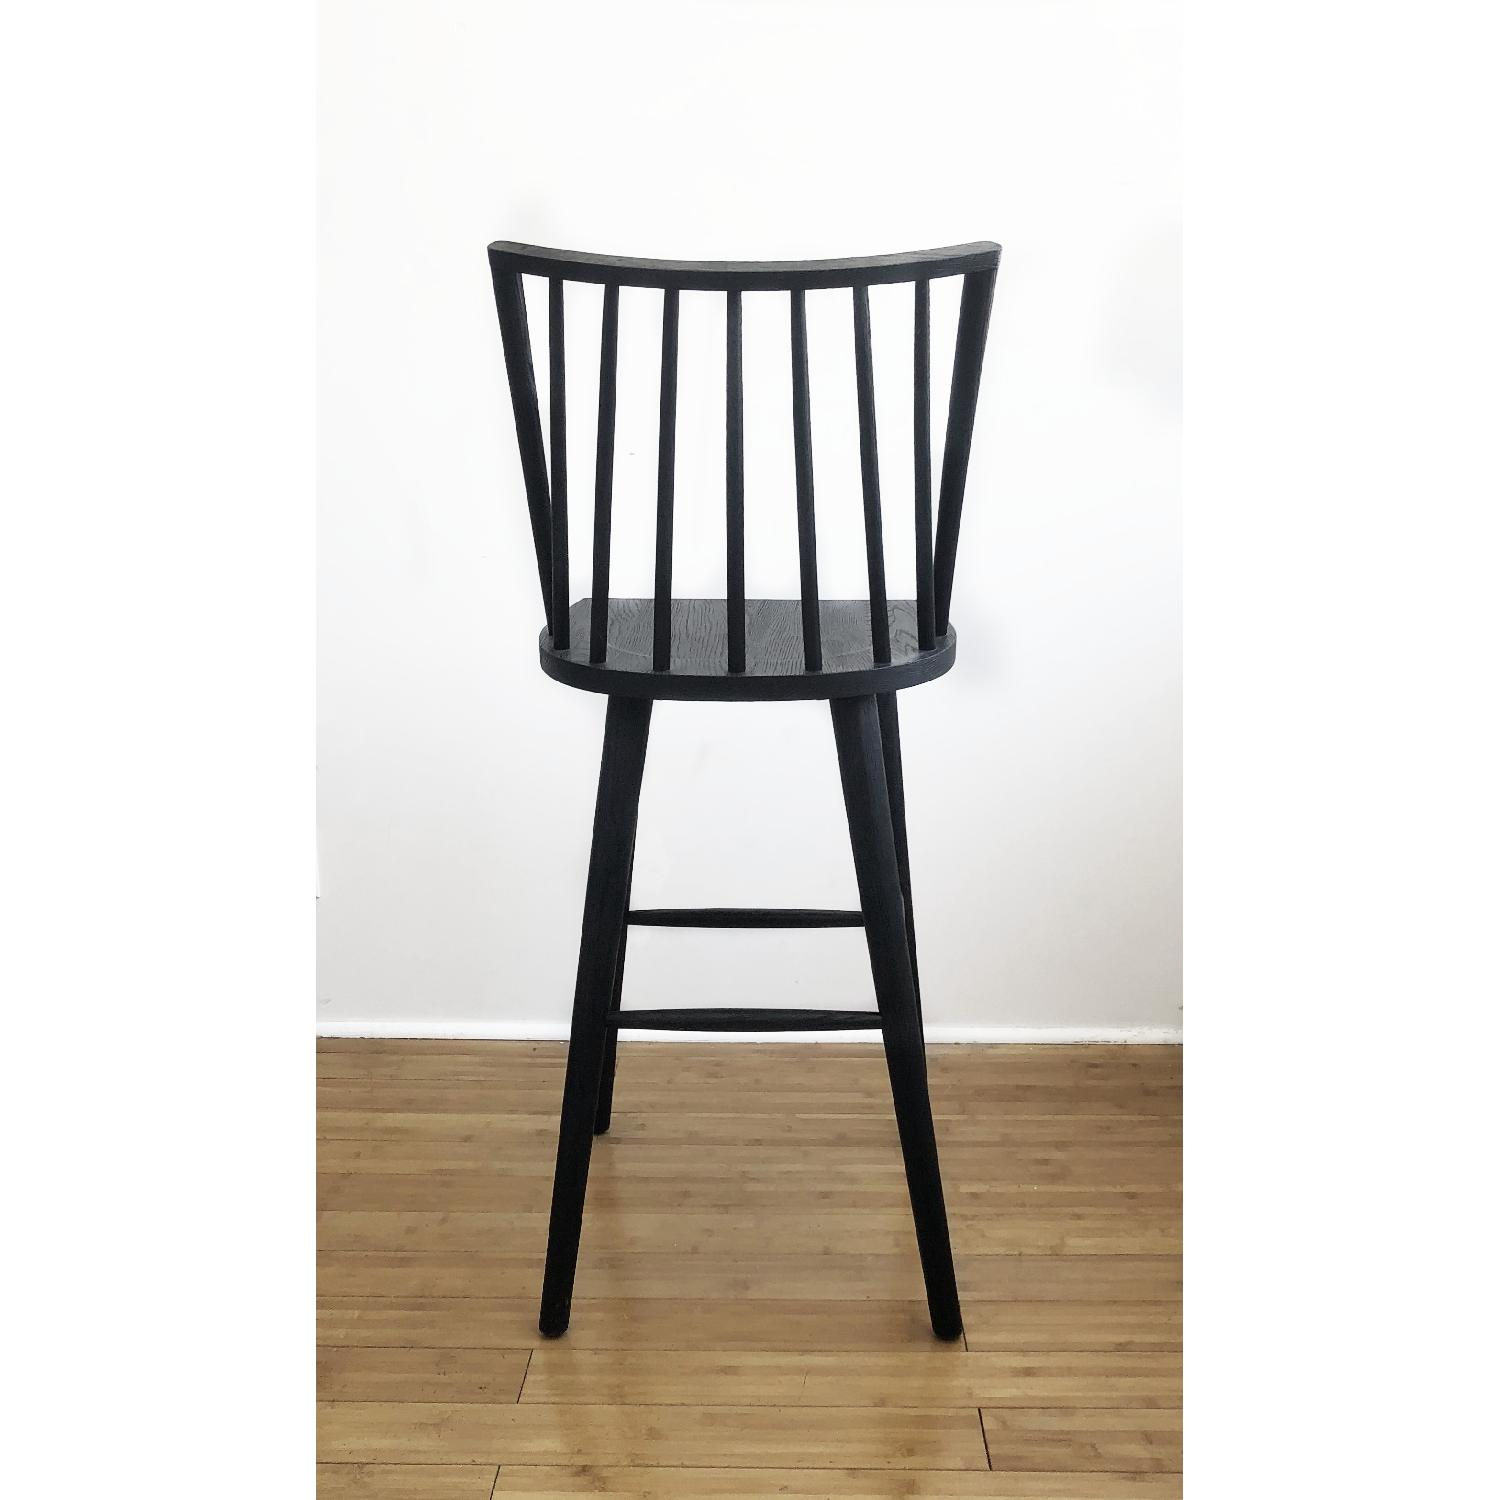 Crate & Barrel Modern Black Oak Windsor Bar Stool - image-2